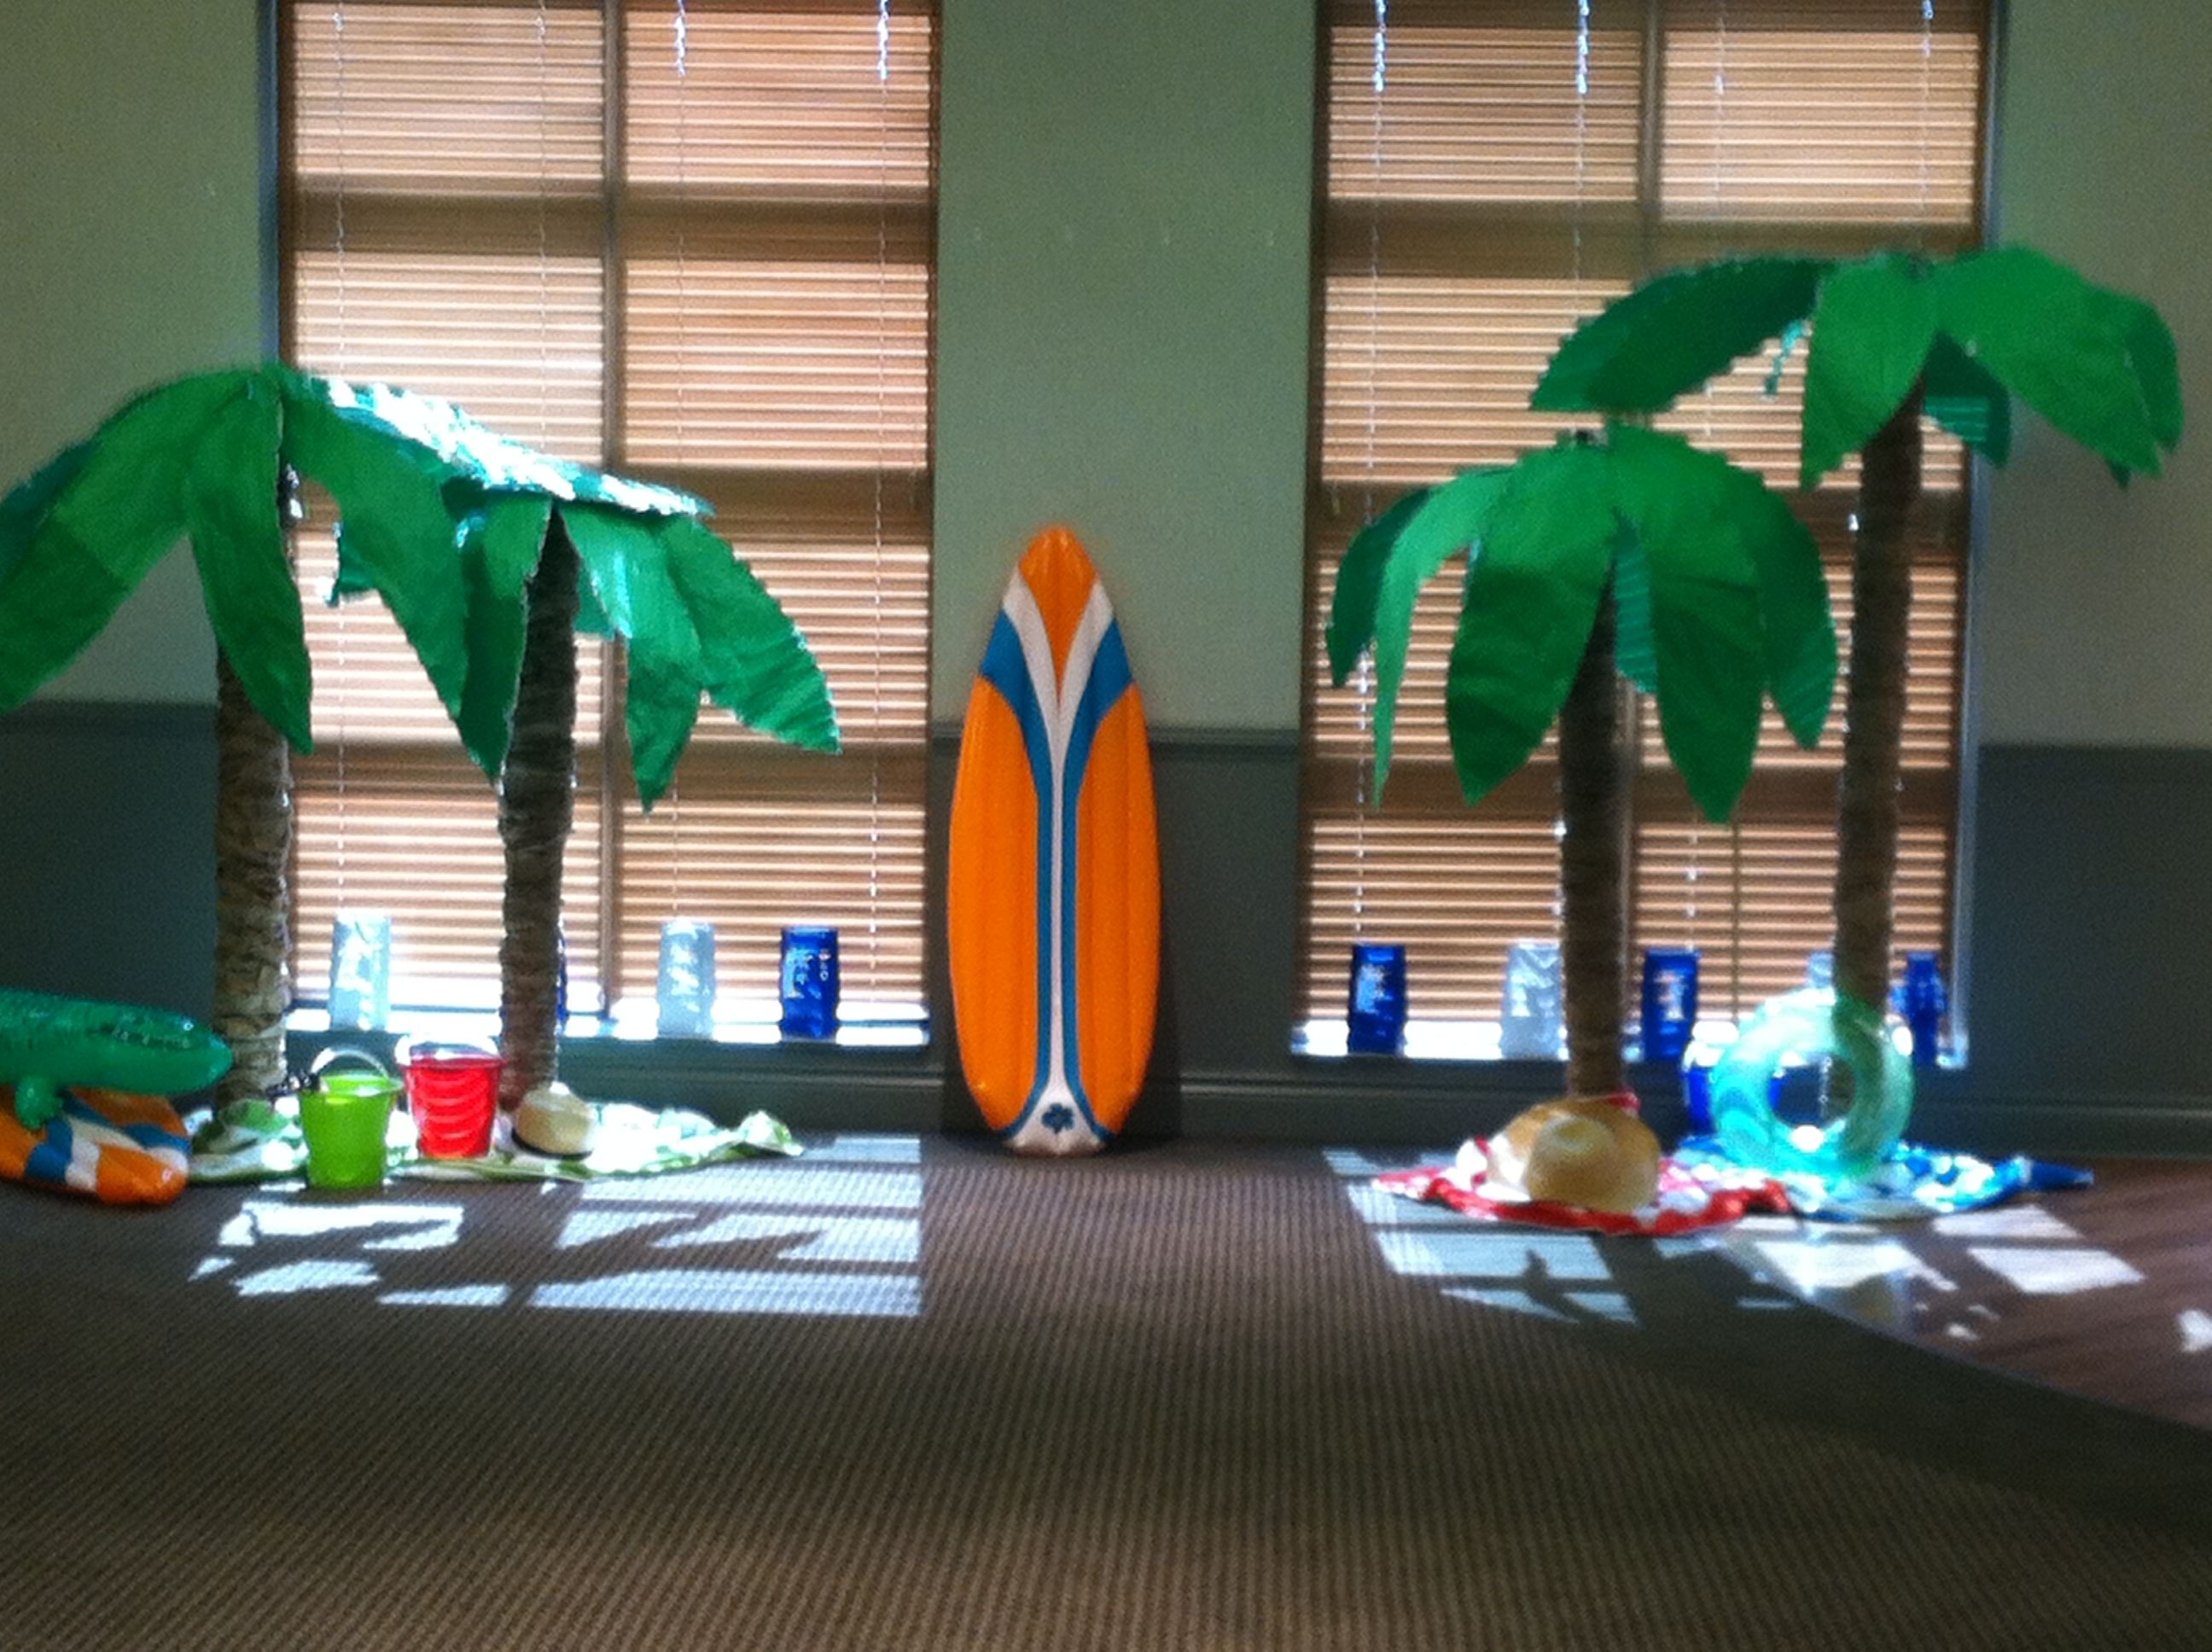 decorations accessories palm for diy artificial hawaii wedding in table beach item party luau leaves decor decoration theme tropical